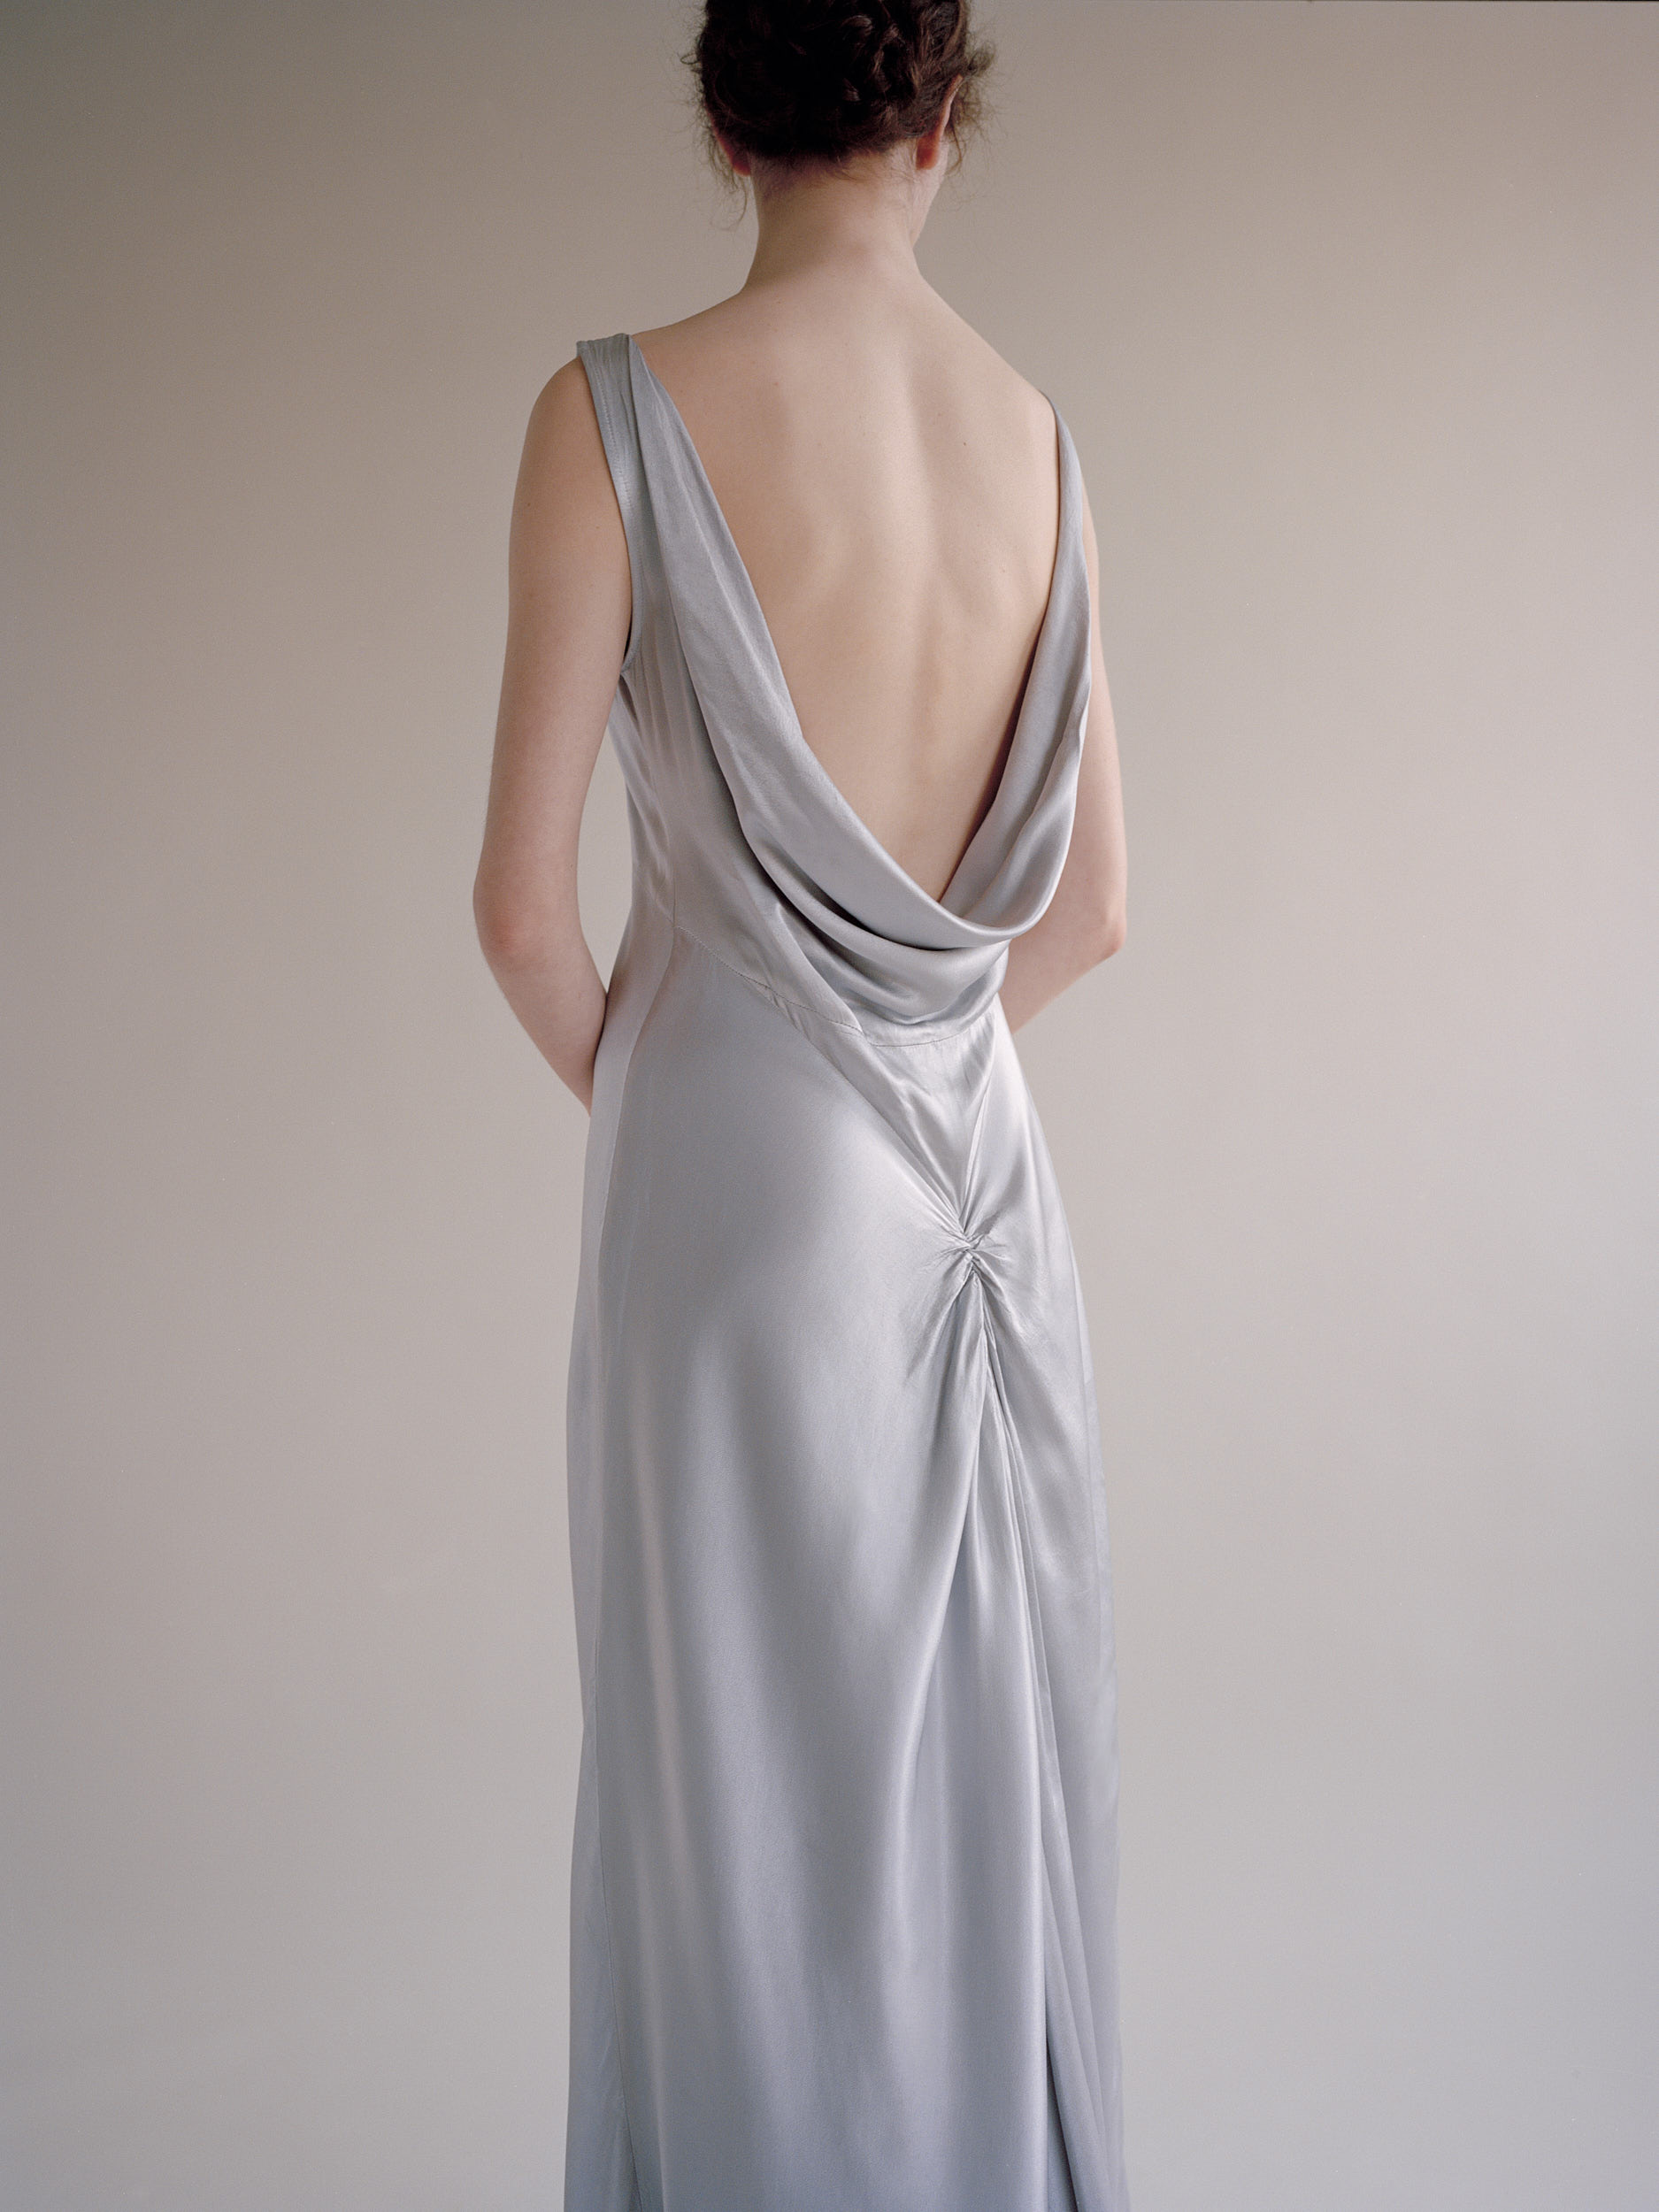 Pearl Grey Satin Dress by Ghost